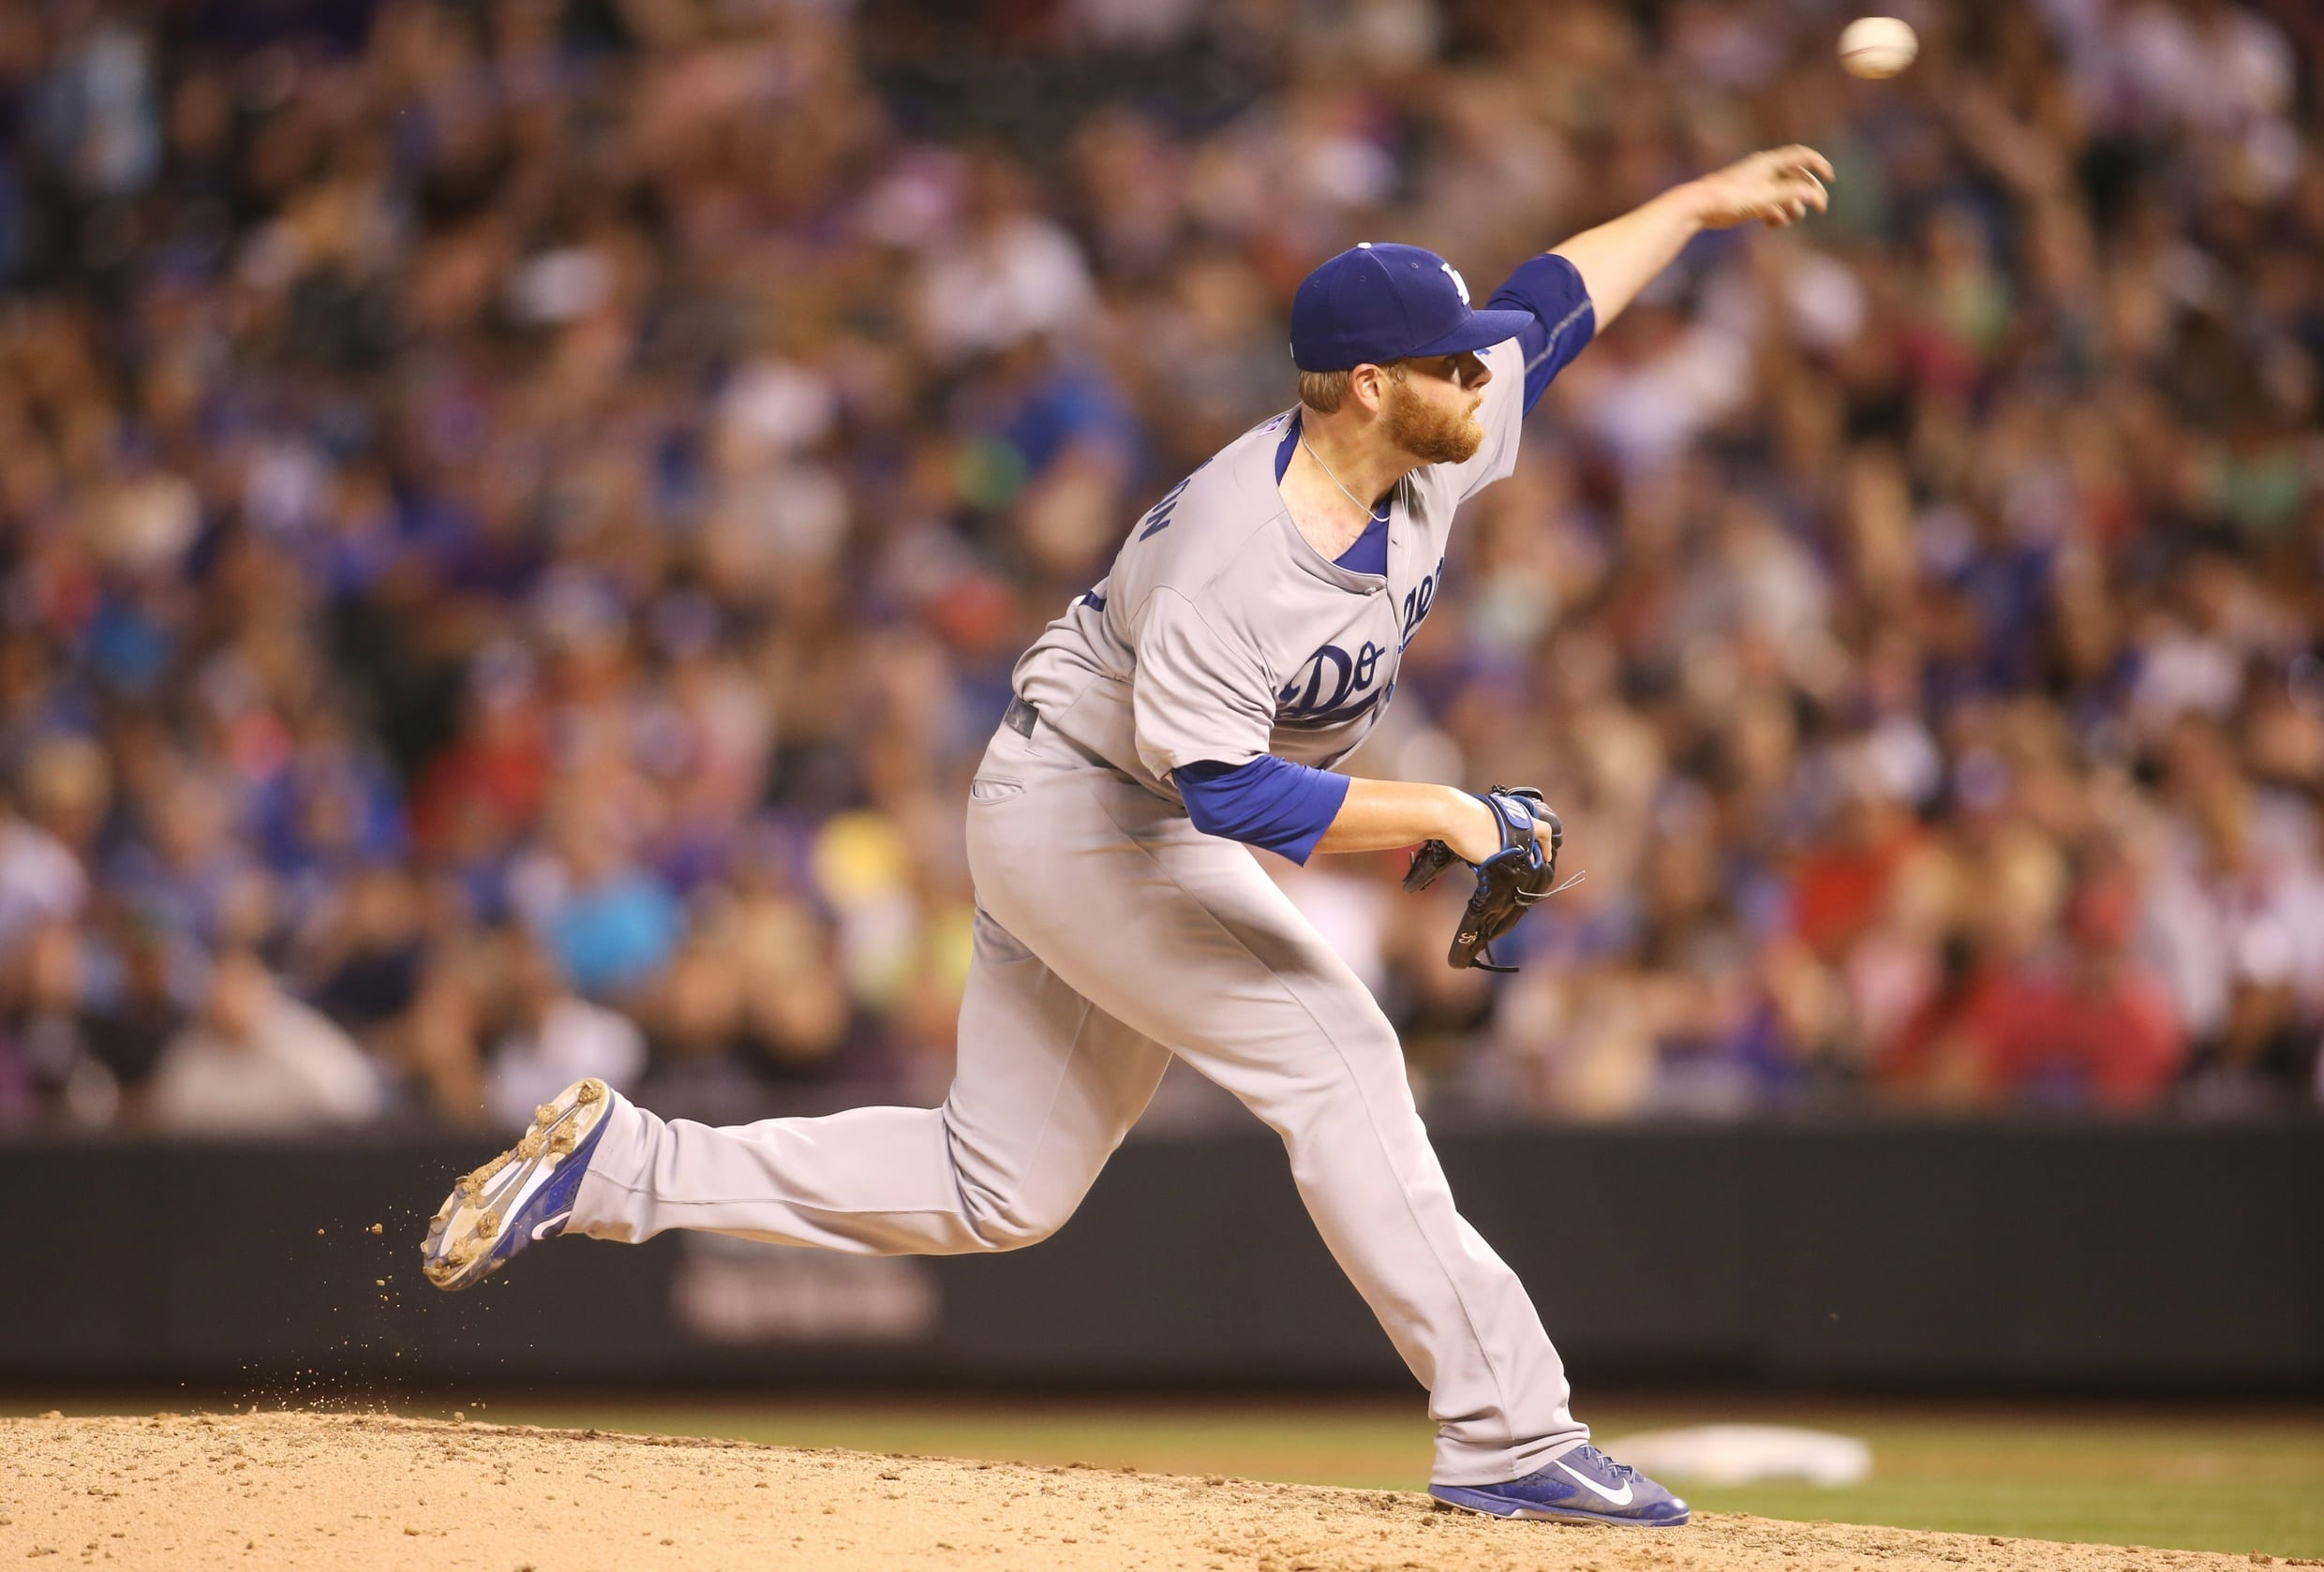 Brett Anderson Open To Re-signing With Dodgers After 2015 Season